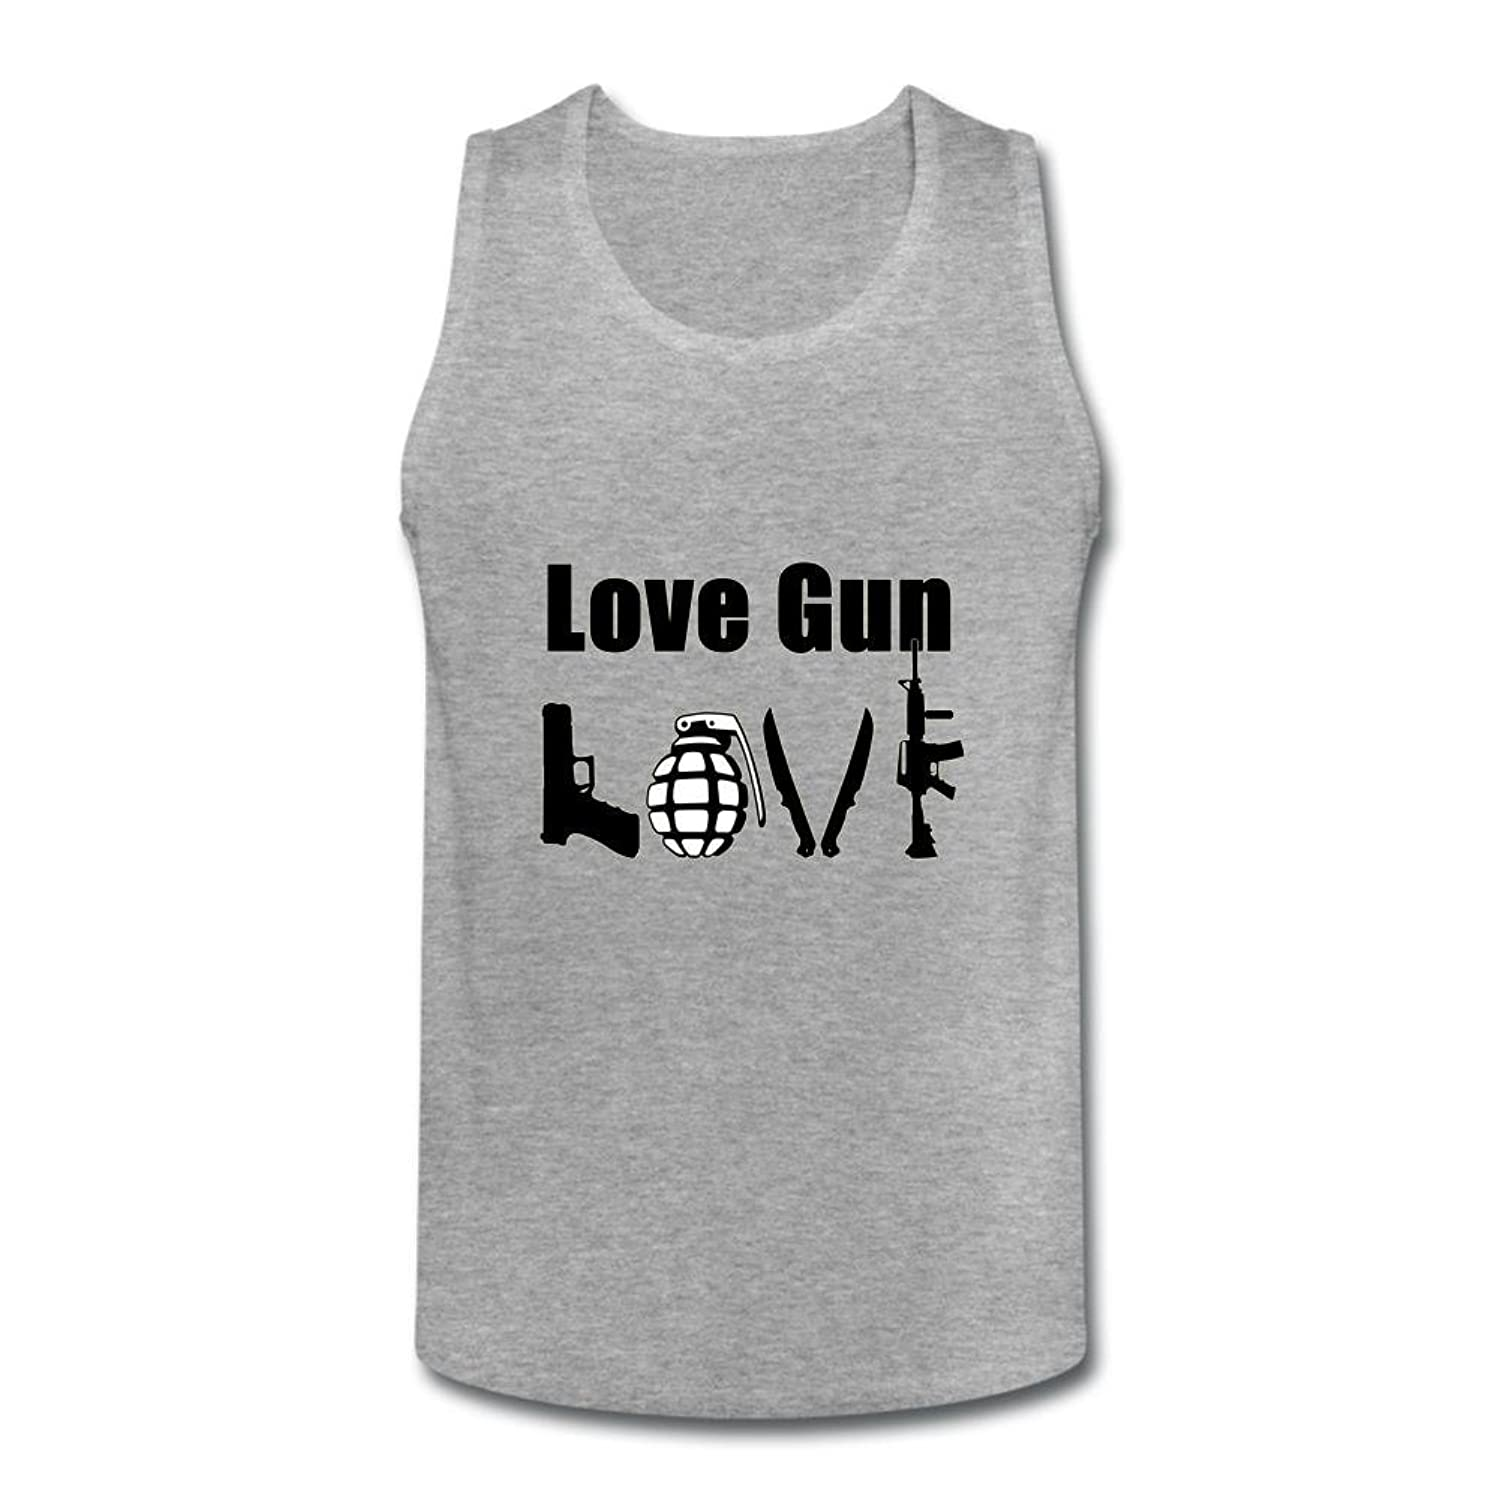 OULIN Men's Love Gun Art Vest White XXXL